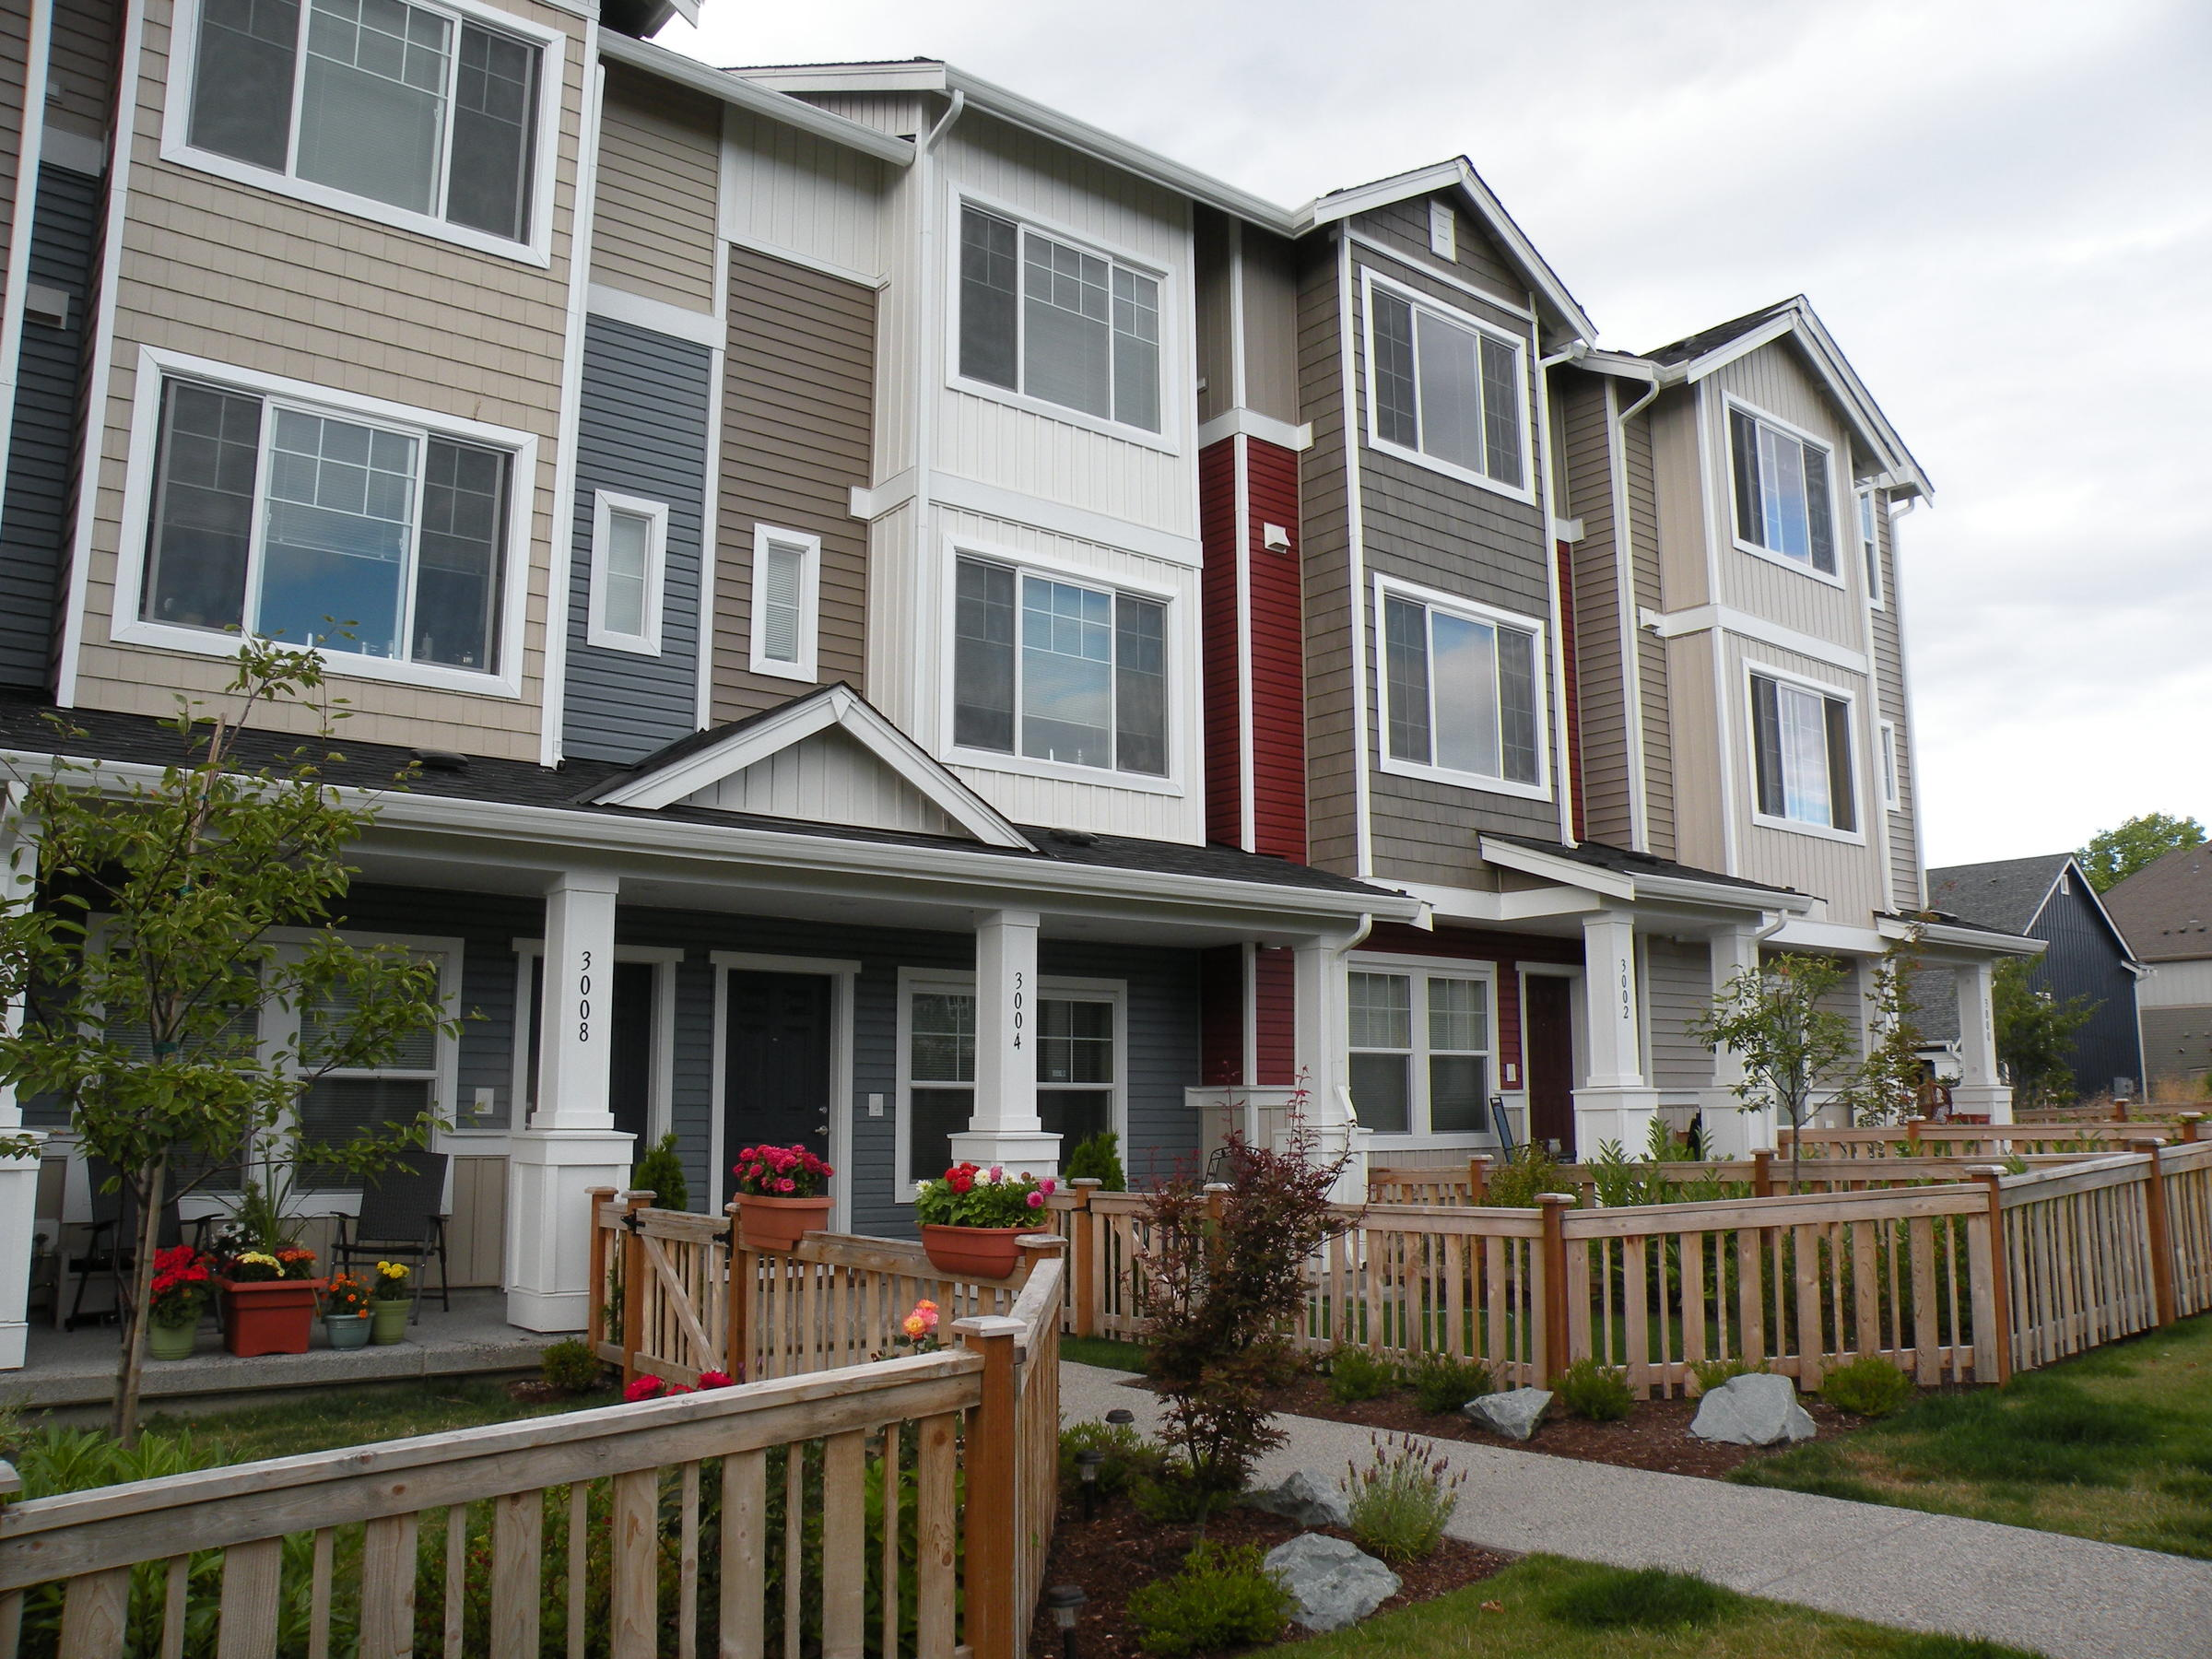 Yesler terrace approved how well do seattle 39 s mixed for Low income home builders